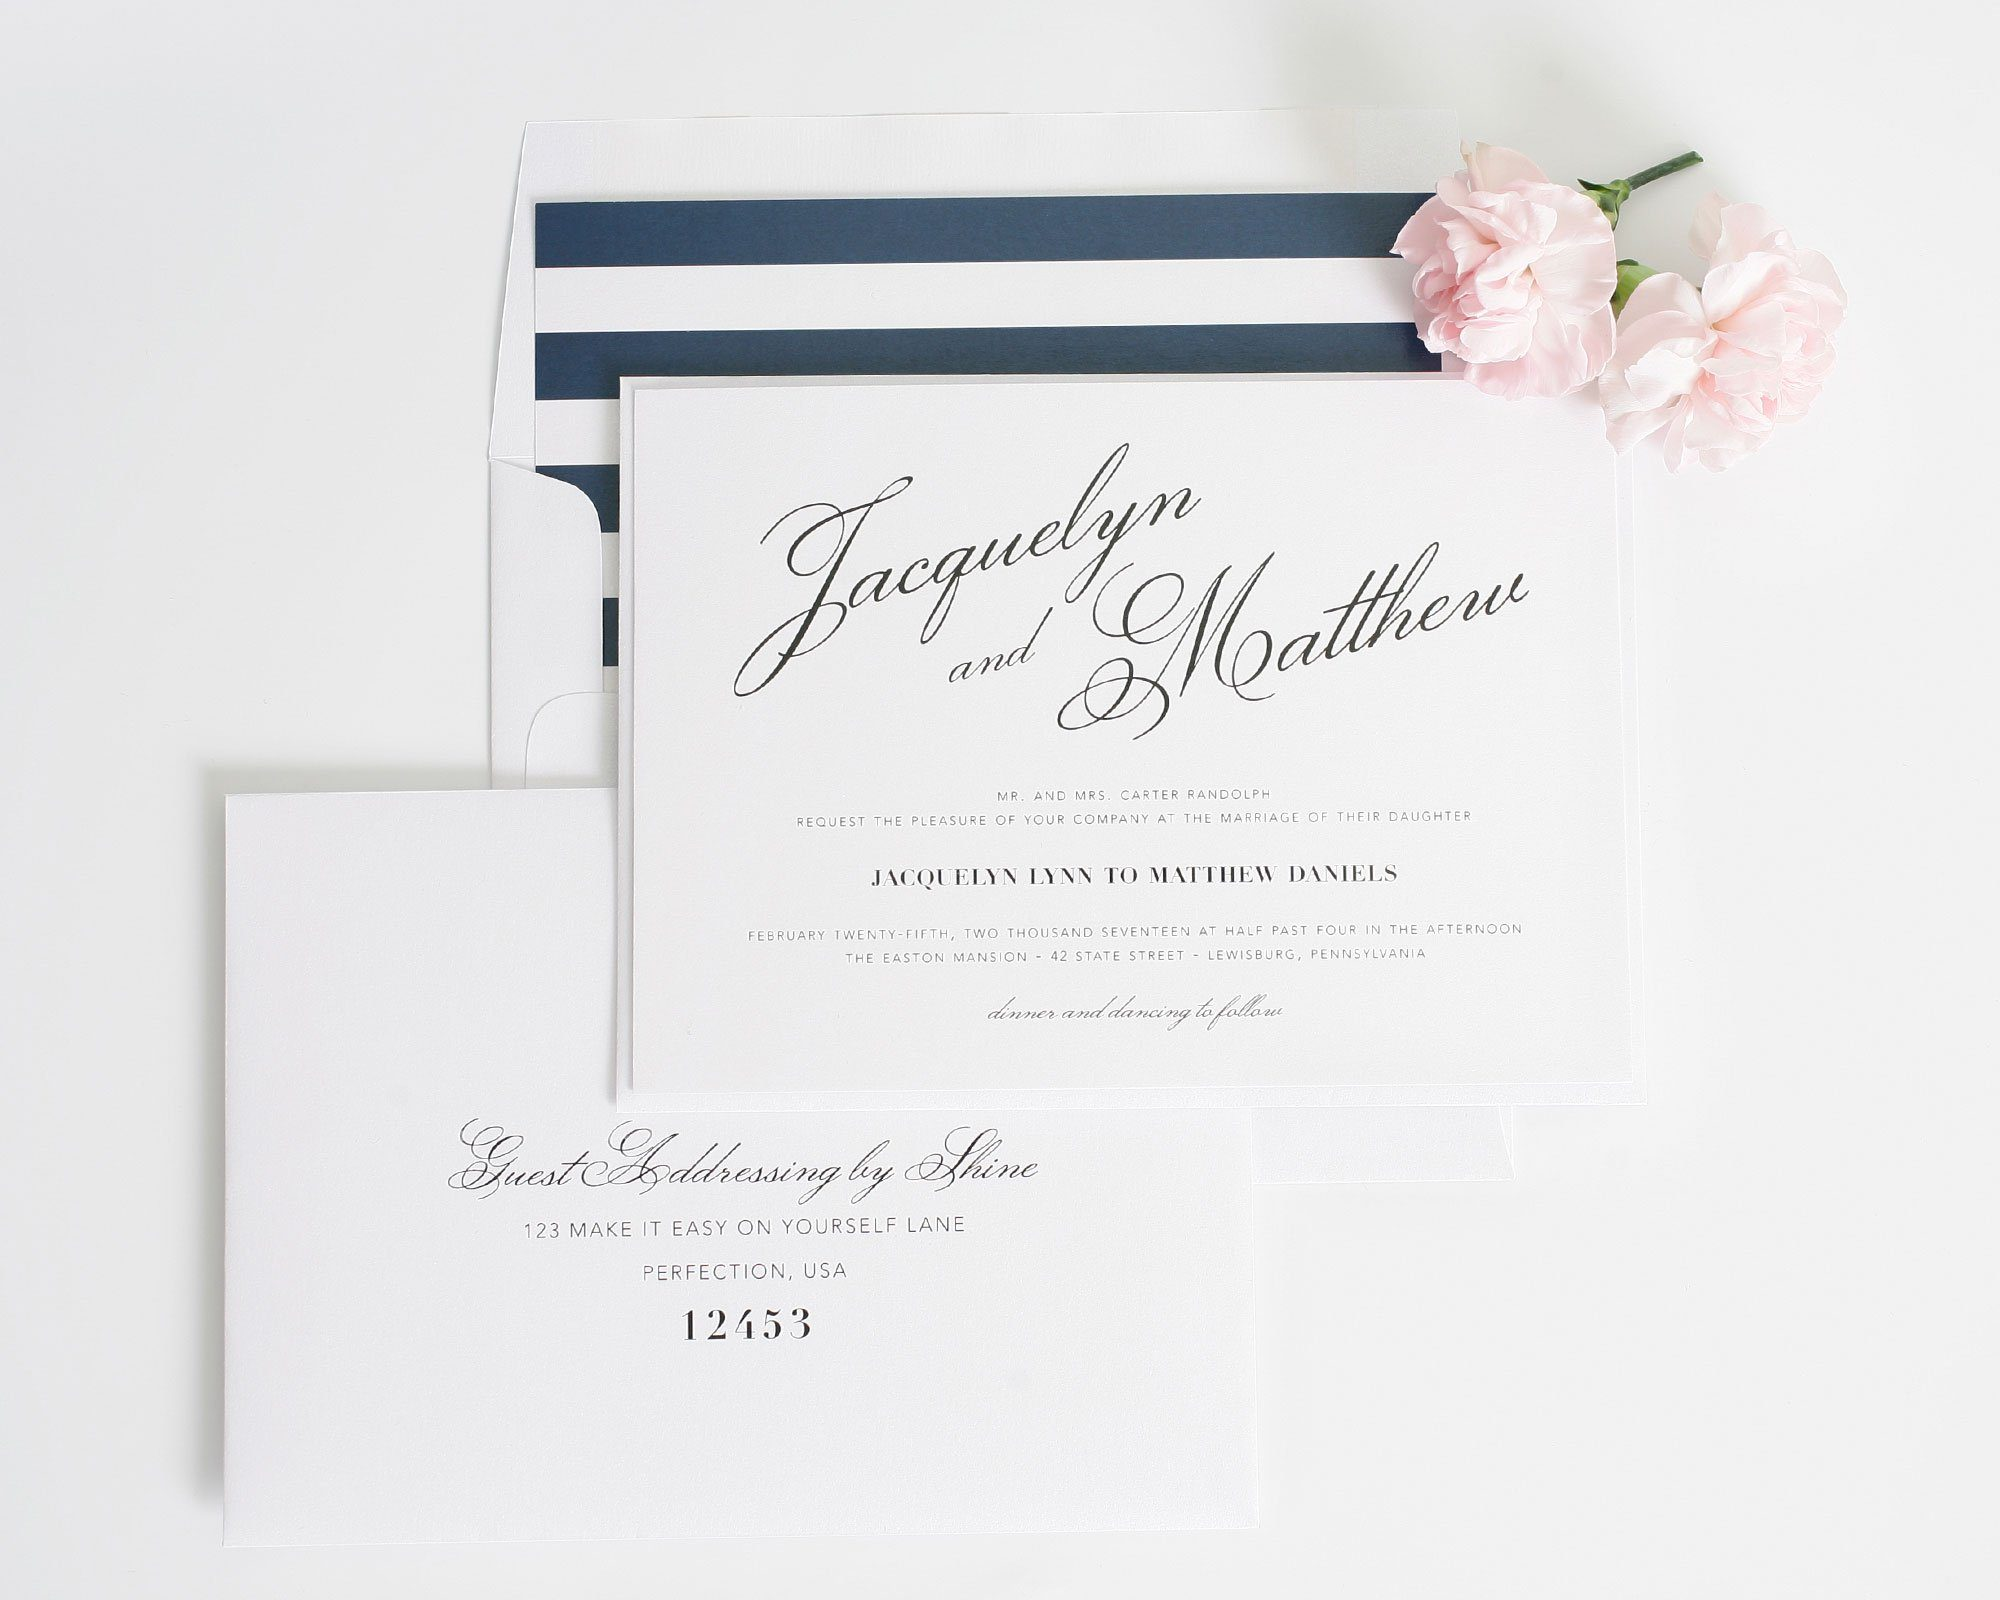 Calligraphy wedding invitations with navy stripes